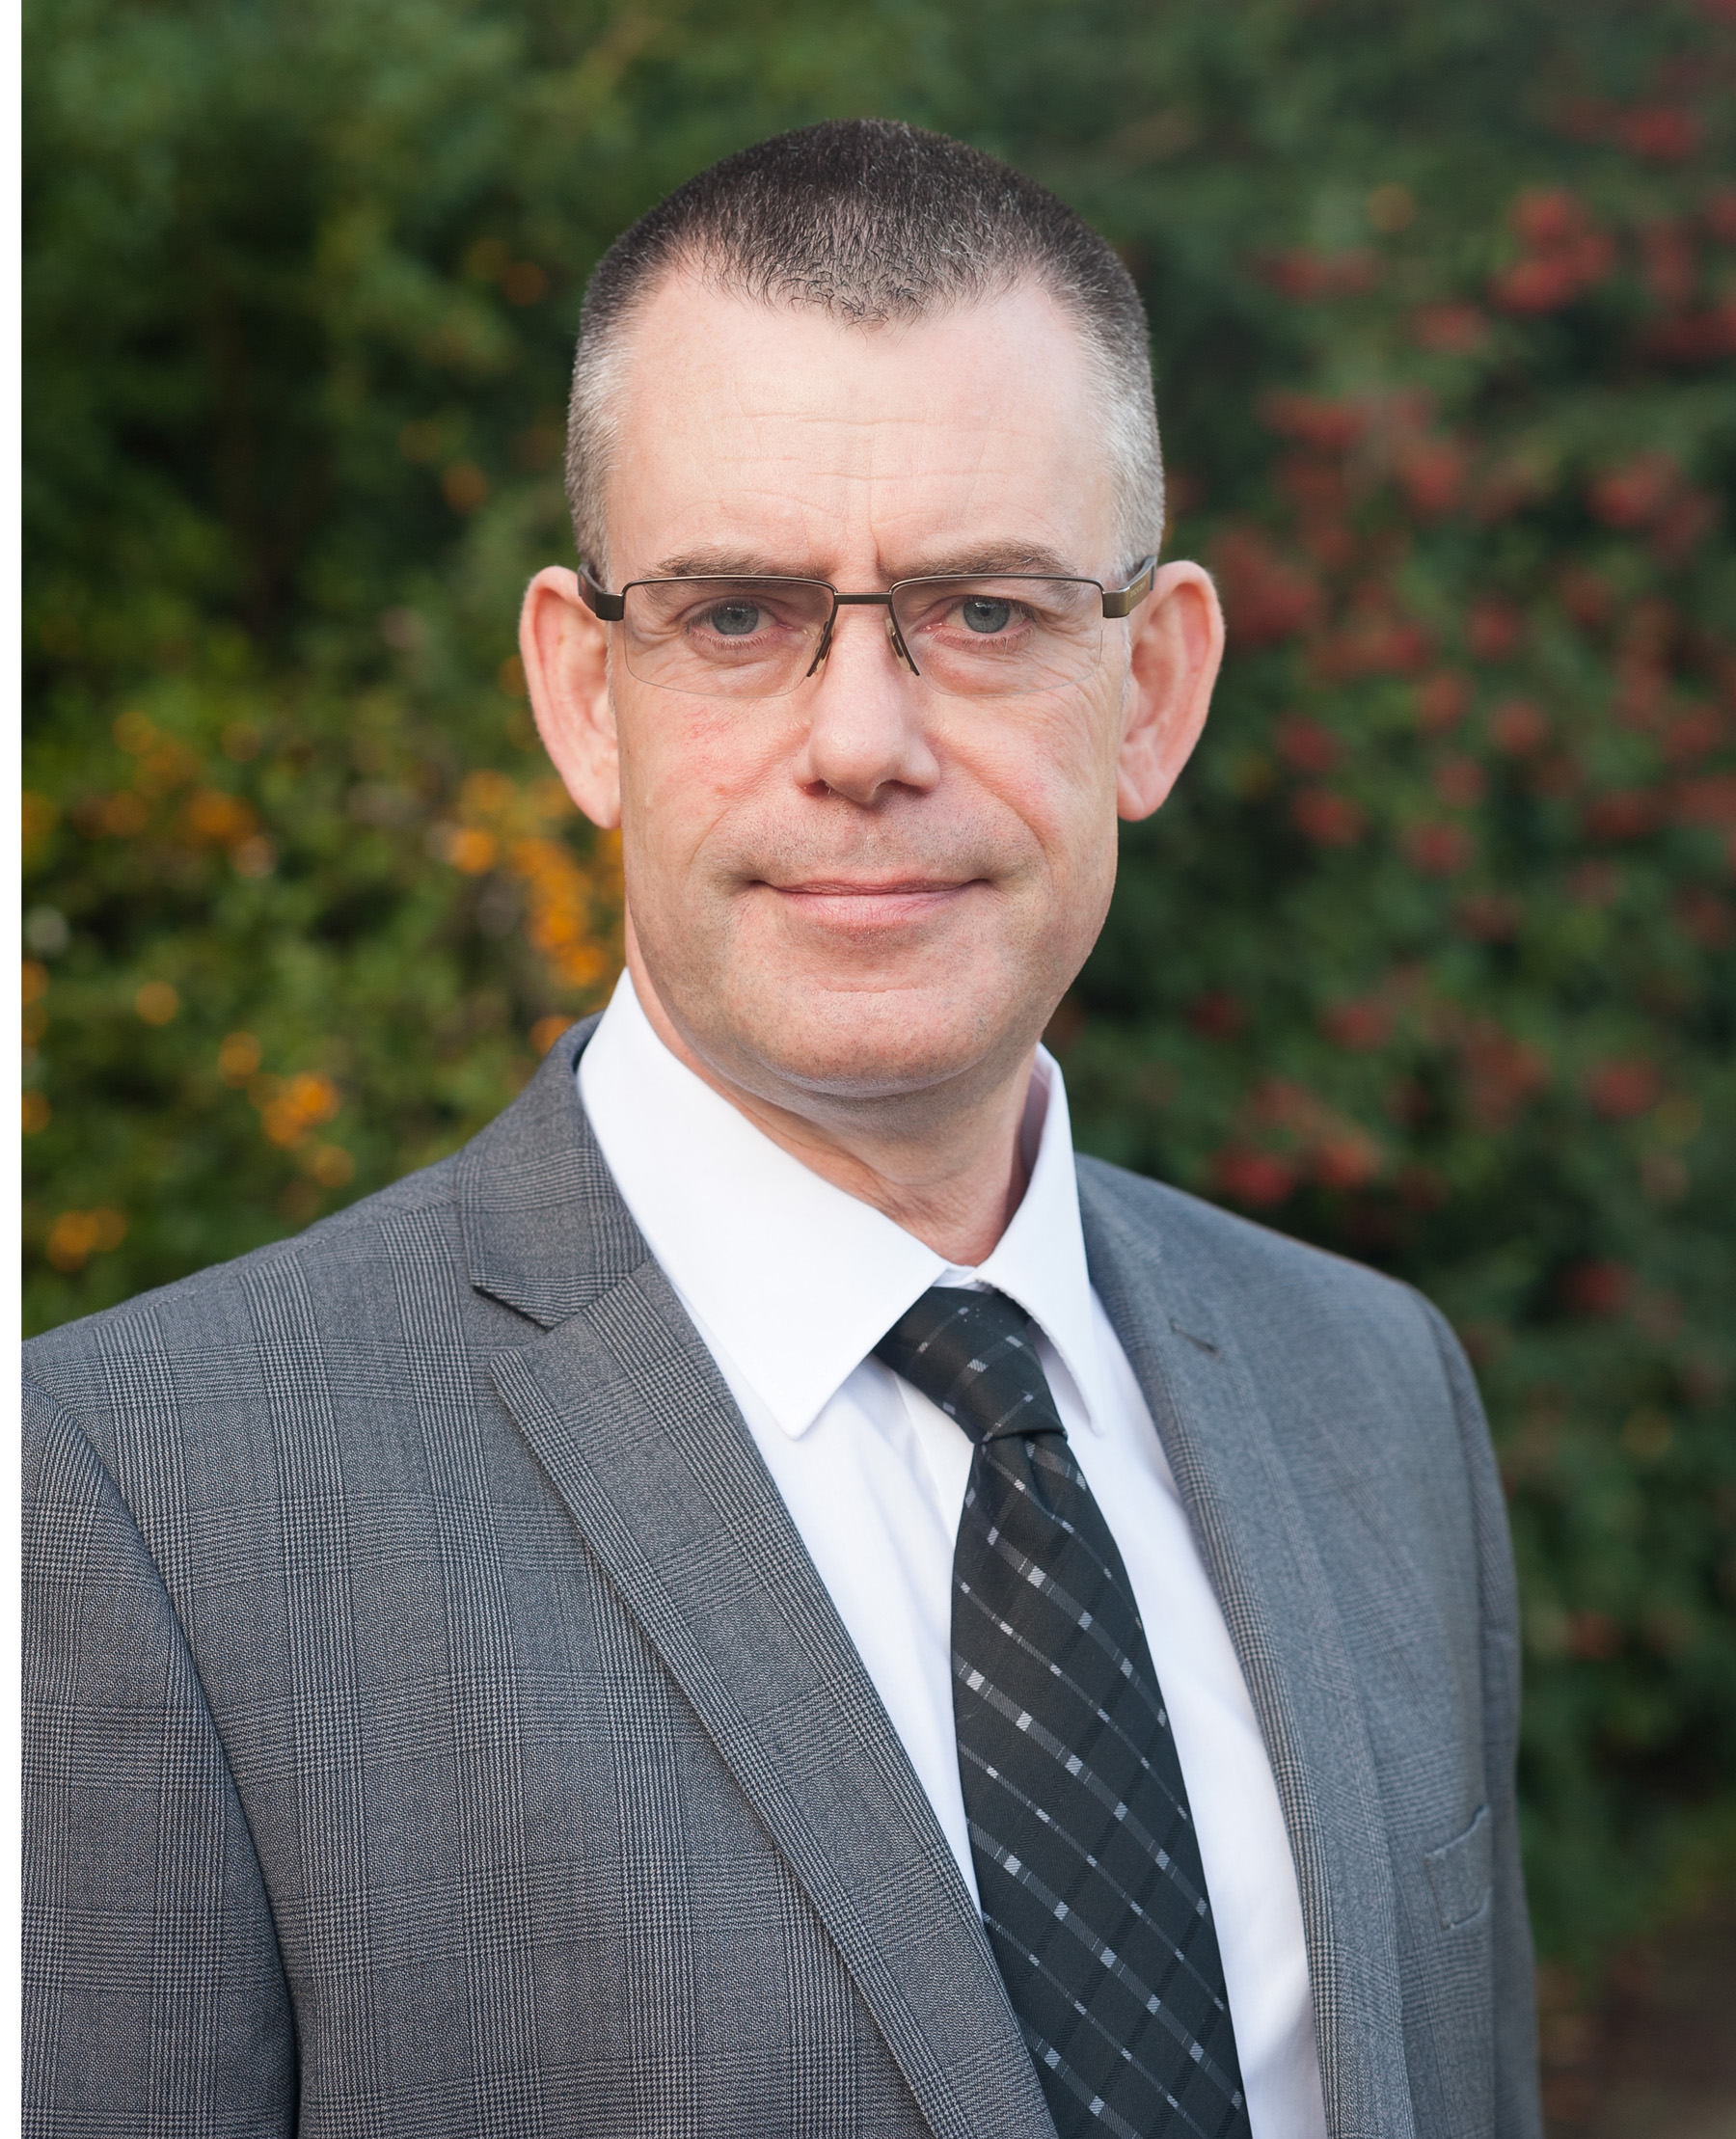 Bennett Homes appoints new Operations Director